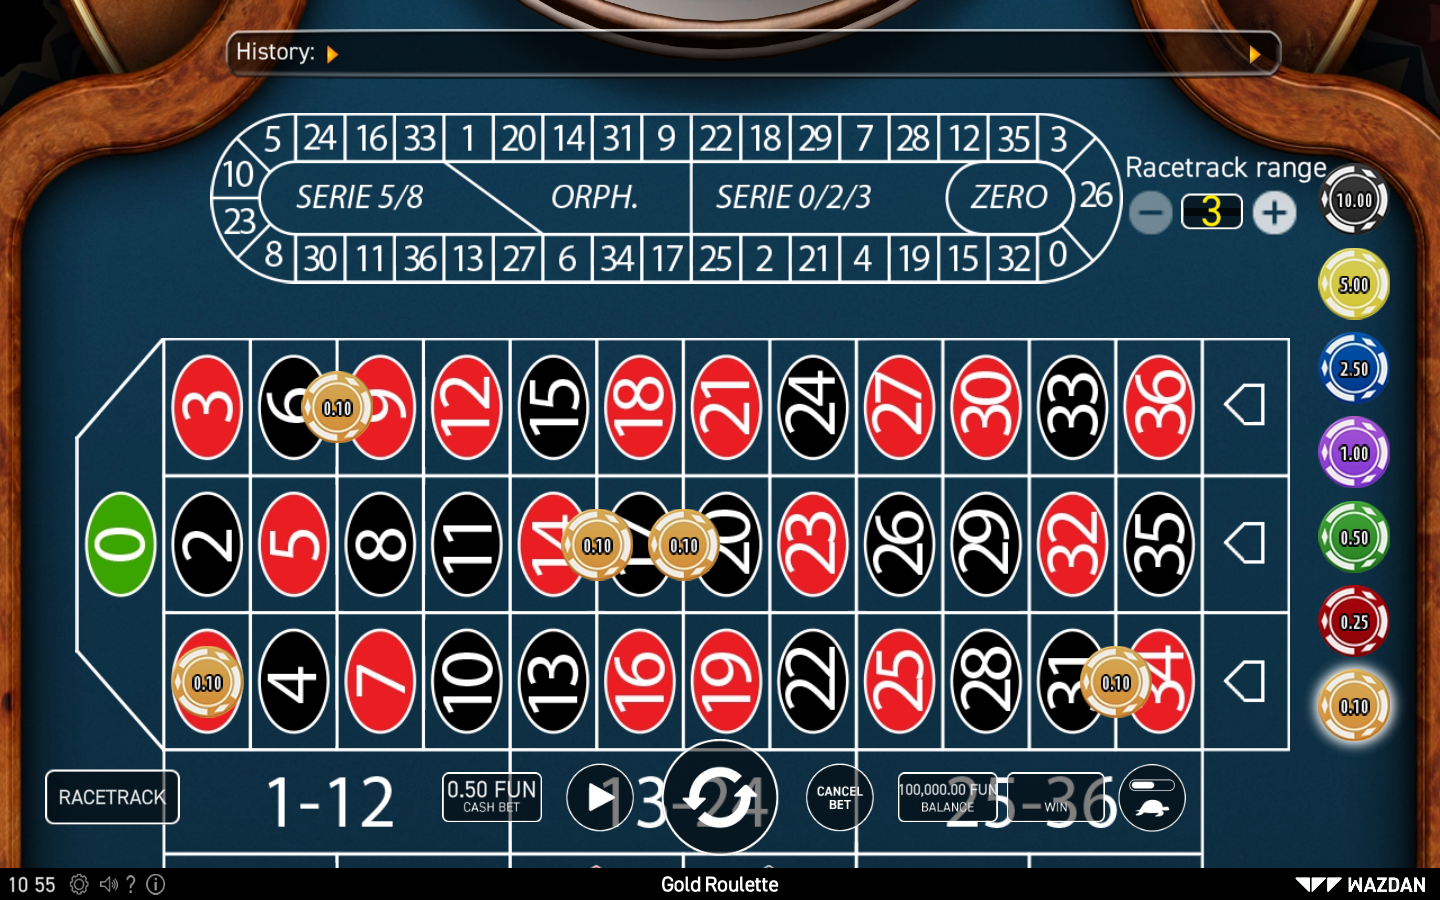 Wazdan Roulette Software Gold Roulette with Special Bets